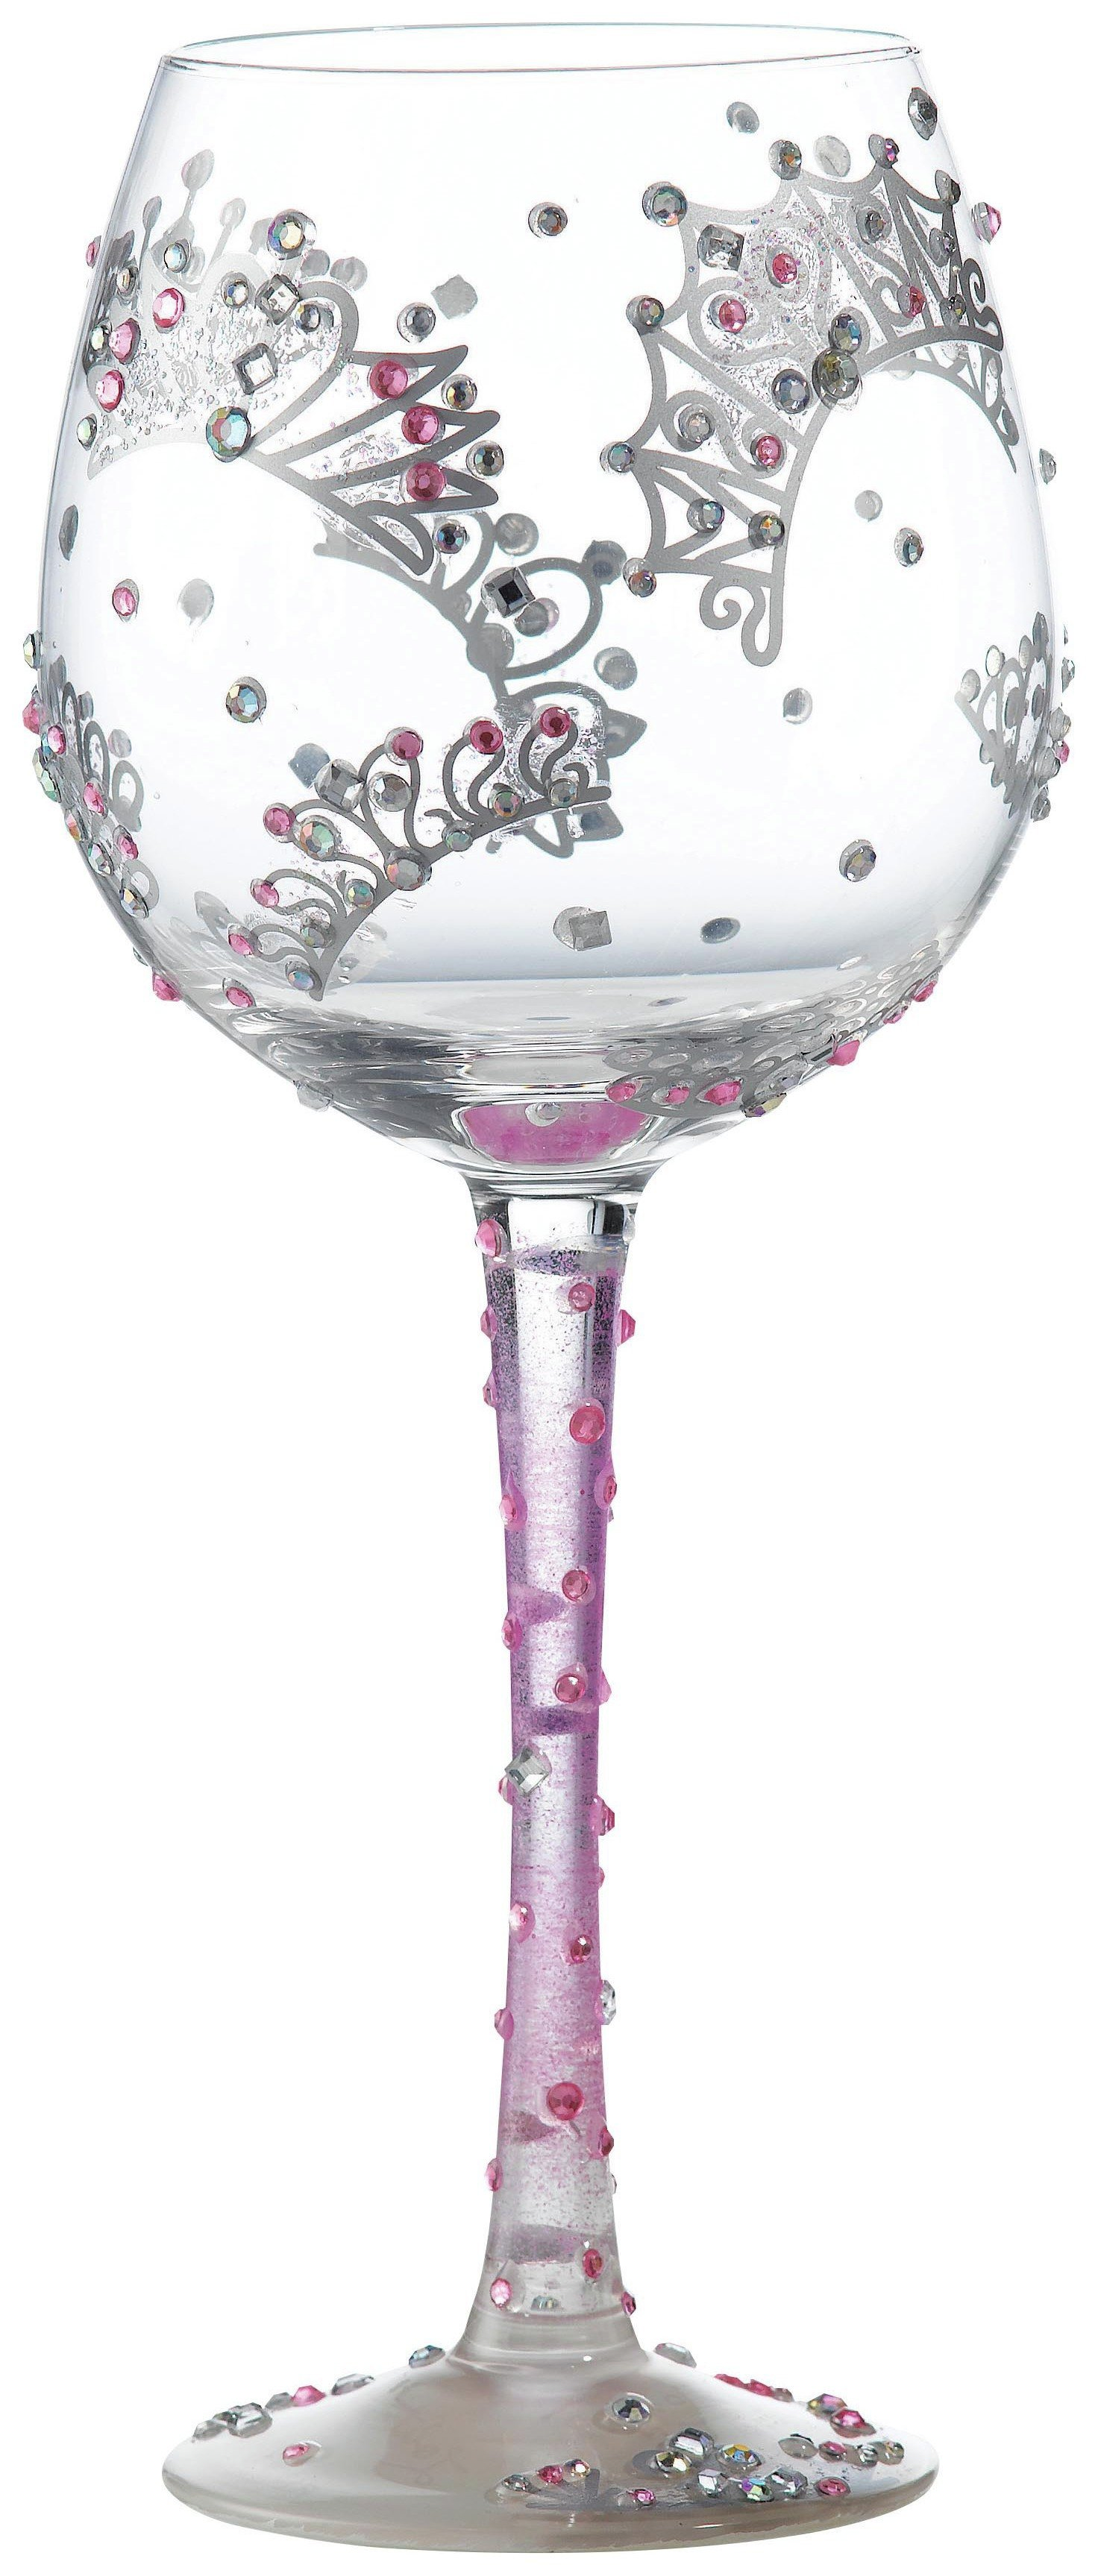 Image of Lolita Superbling Princess Wine Glass.